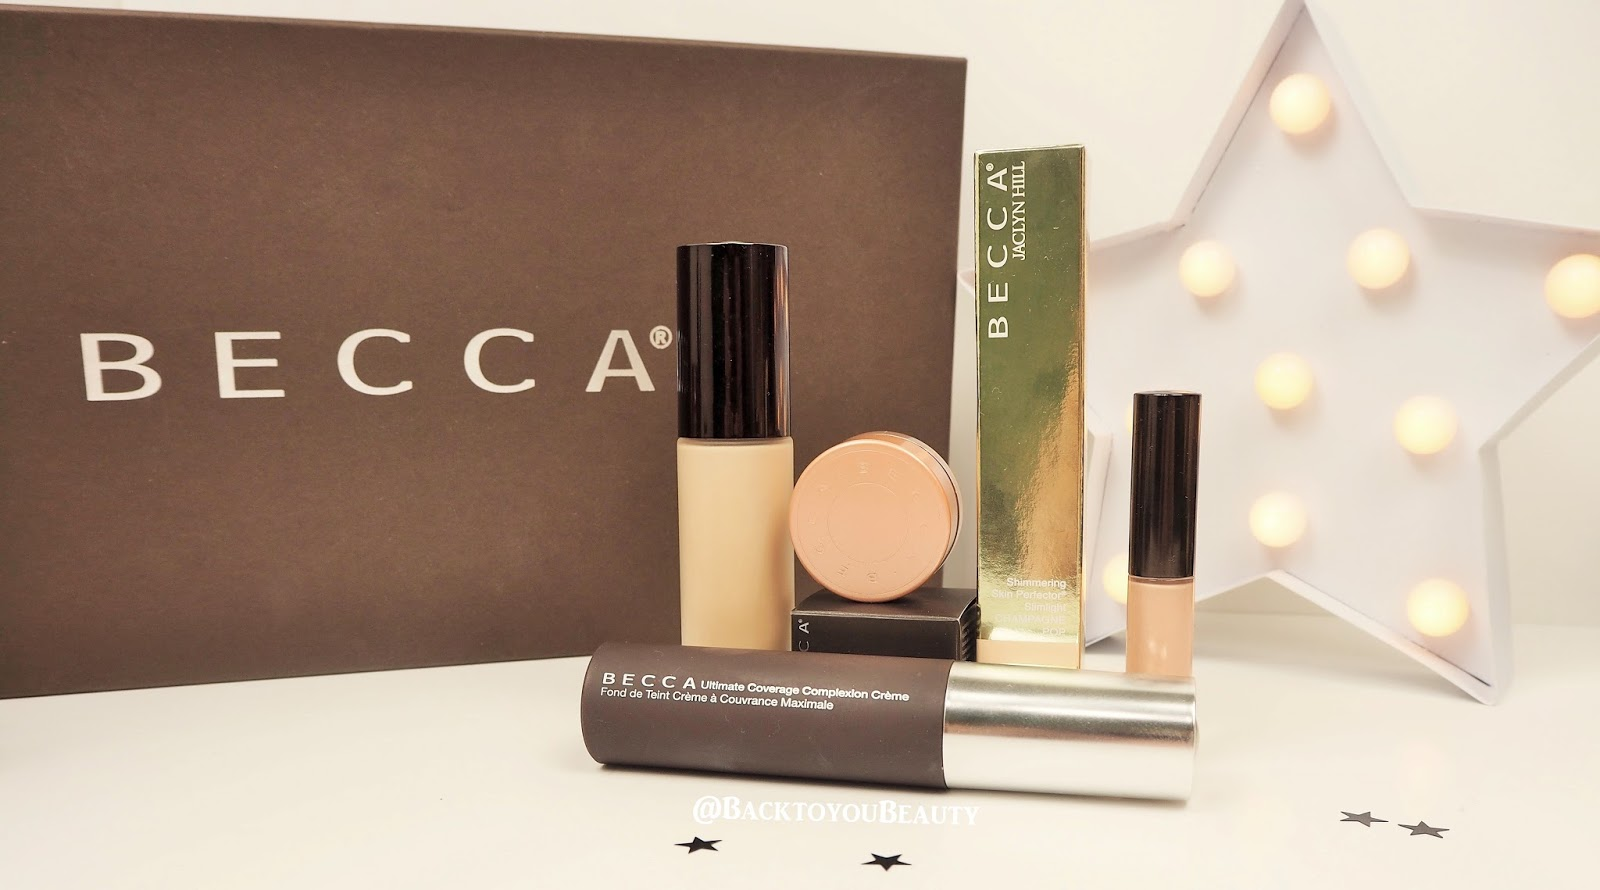 Becca Qvc Tsv – 5 piece Complexion and Radiance Collection – Global